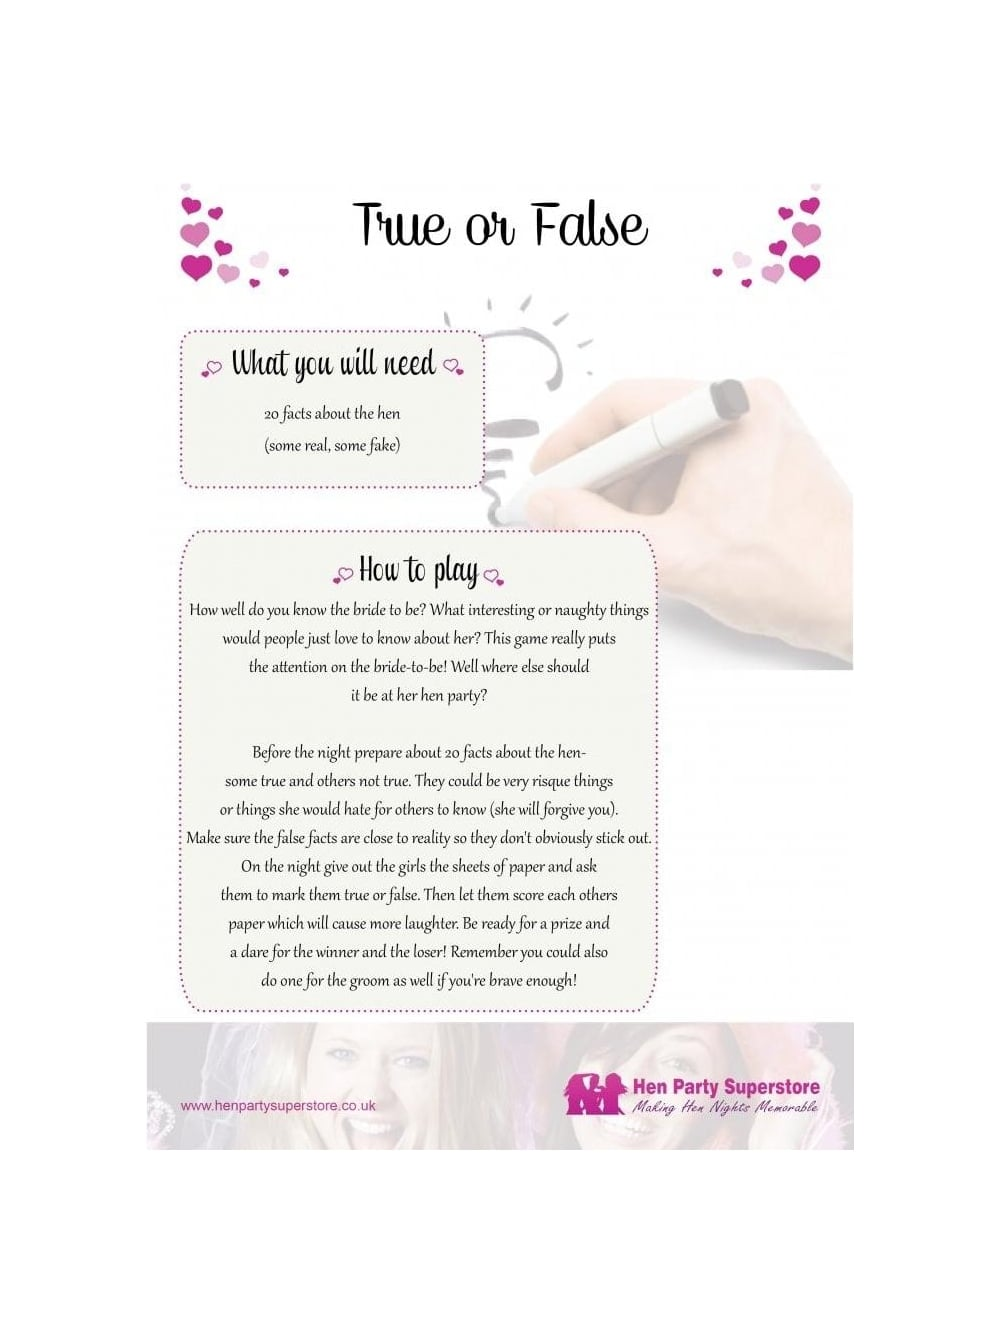 True Or False Free Hen Party Game | Hen Party Superstore